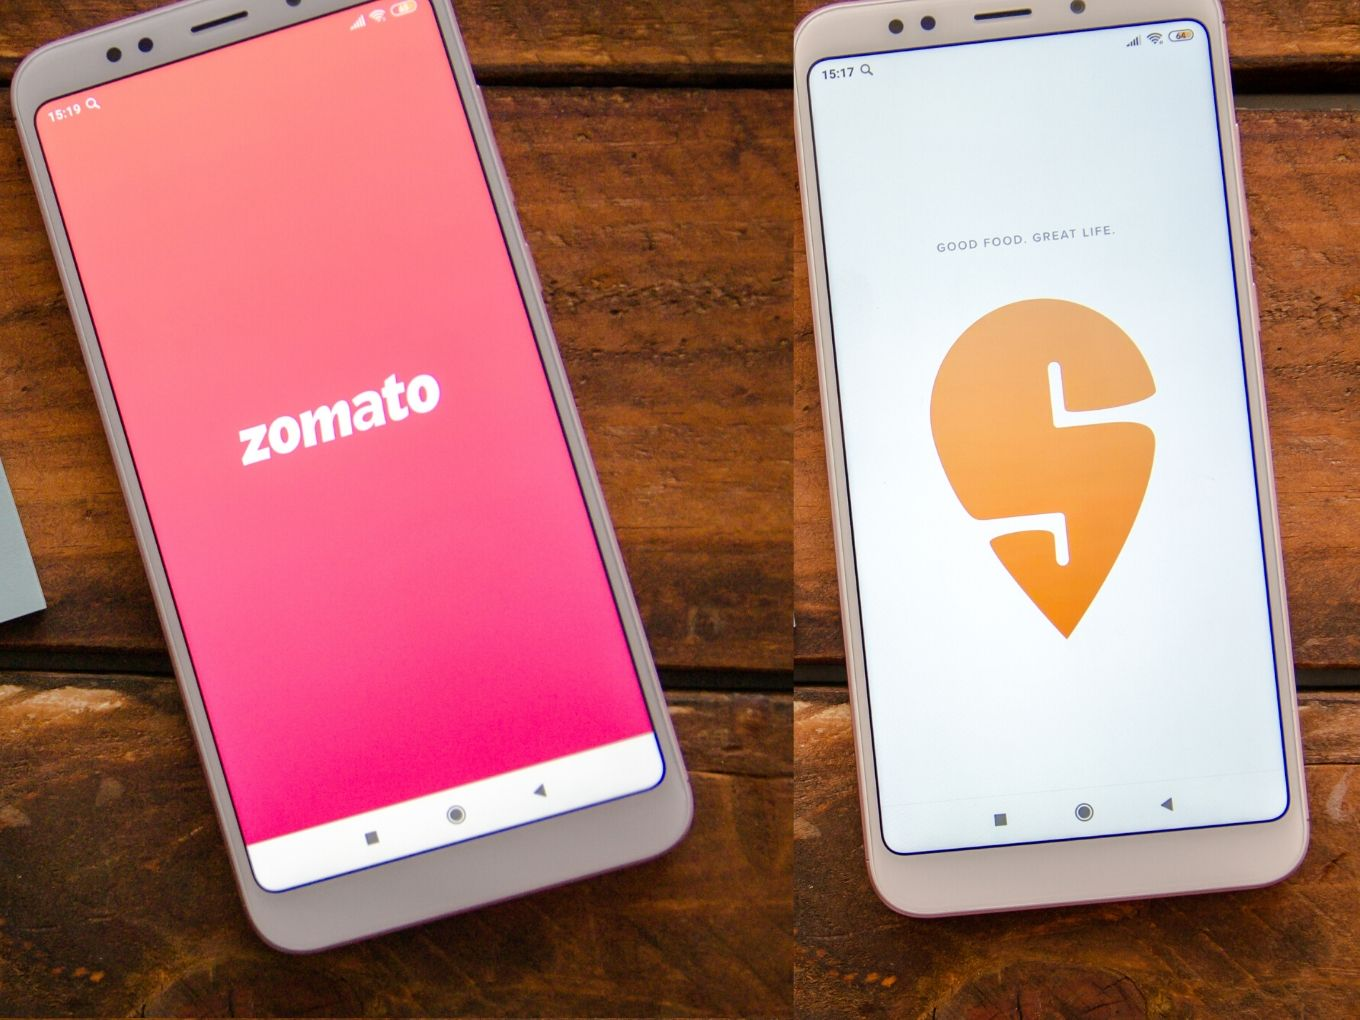 Zomato Earns More As Swiggy Burns More: How India's Foodtech Unicorns Fared In FY19